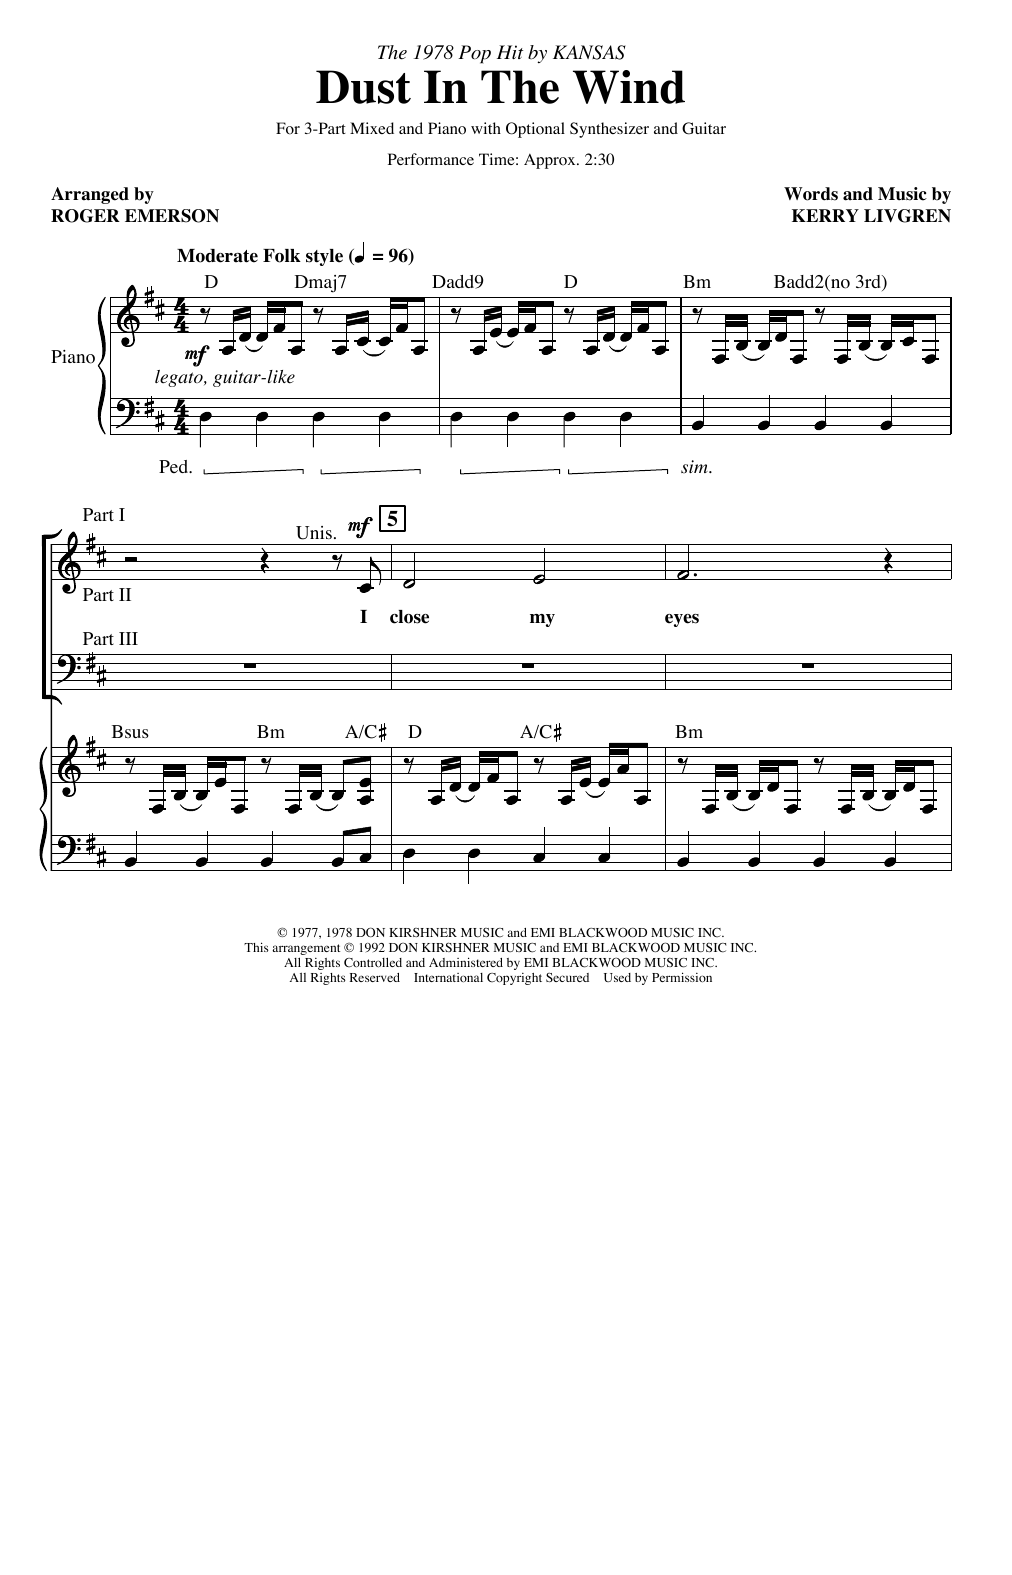 Dust In The Wind (arr. Roger Emerson) (3-Part Mixed Choir)